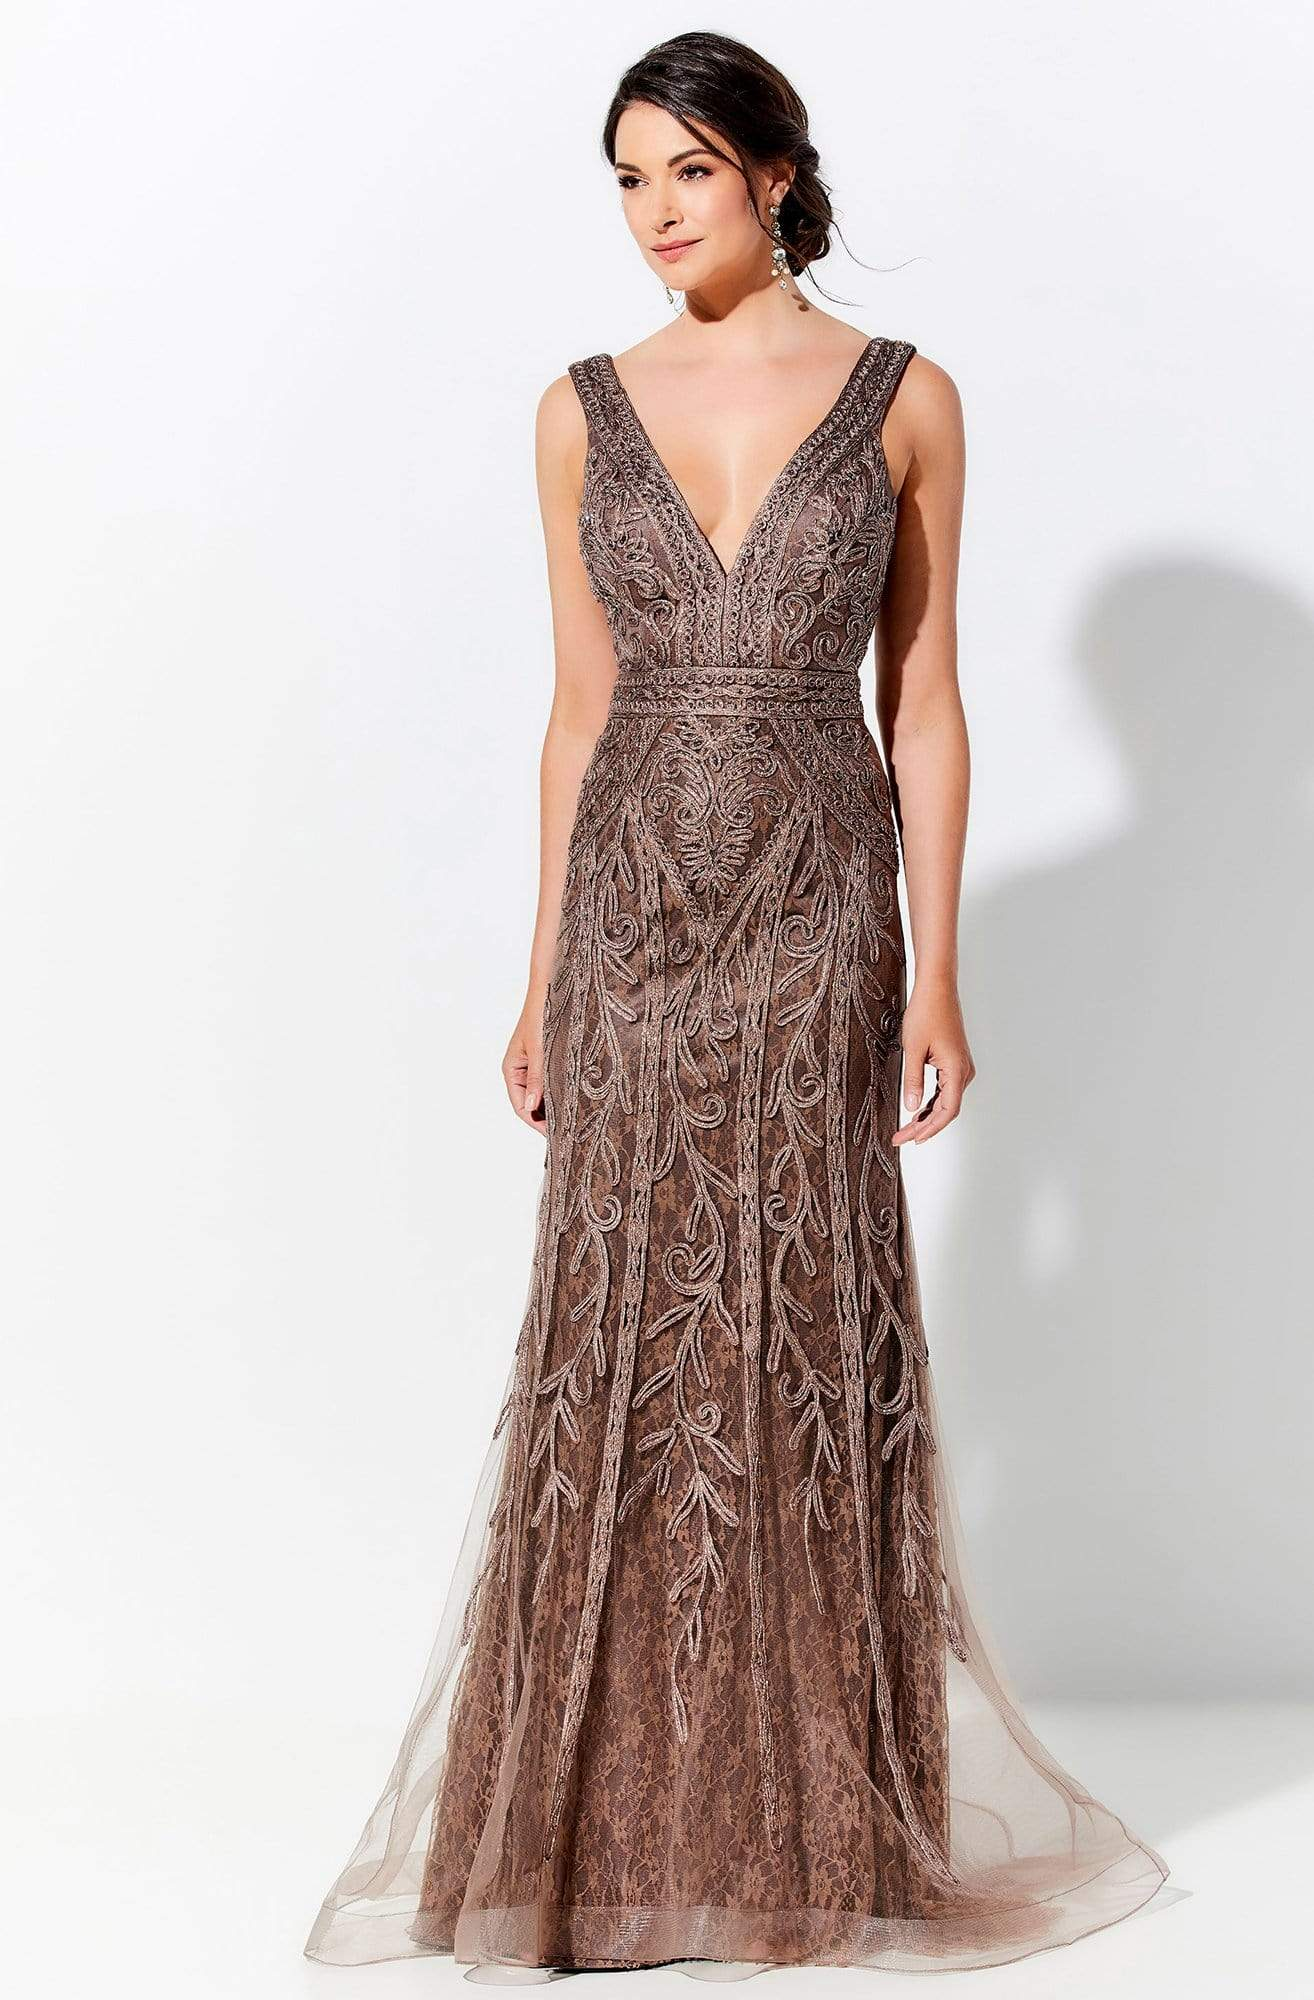 Ivonne D by Mon Cheri - 120D03 Plunging V-Neck Metallic Lace Dress In Brown